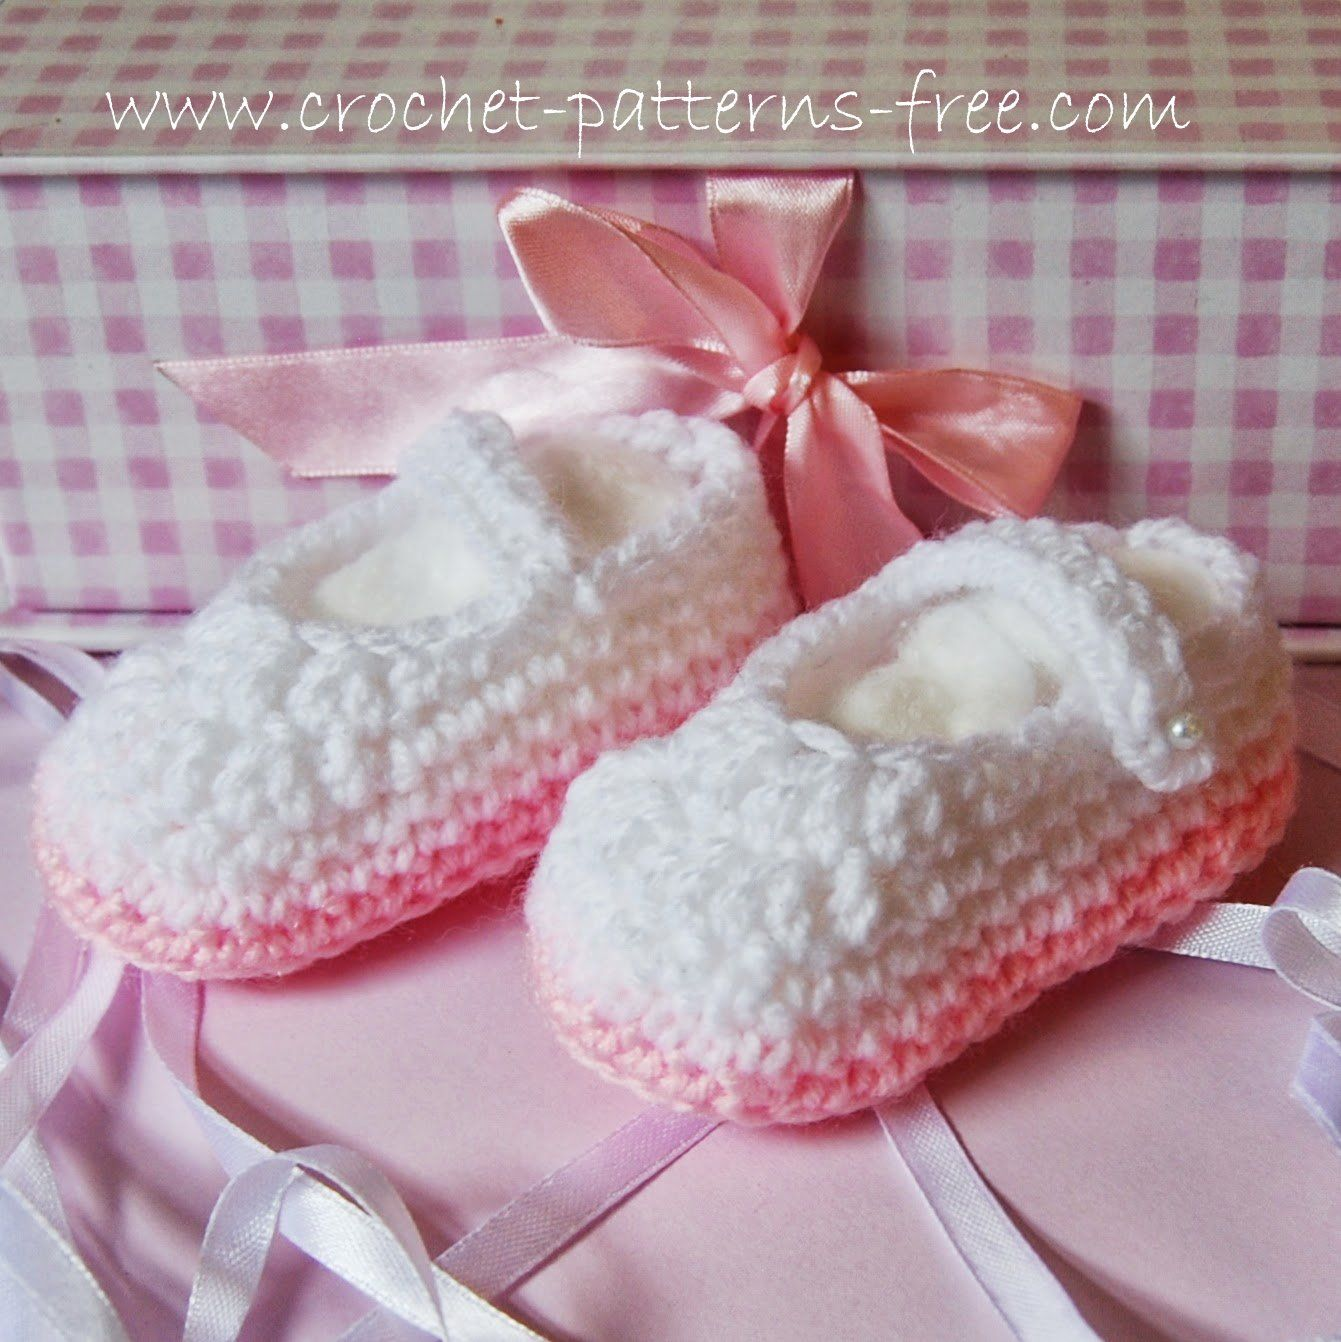 Baby Bootie Shoes Crochet Patterns Free Crochet Patterns For Baby